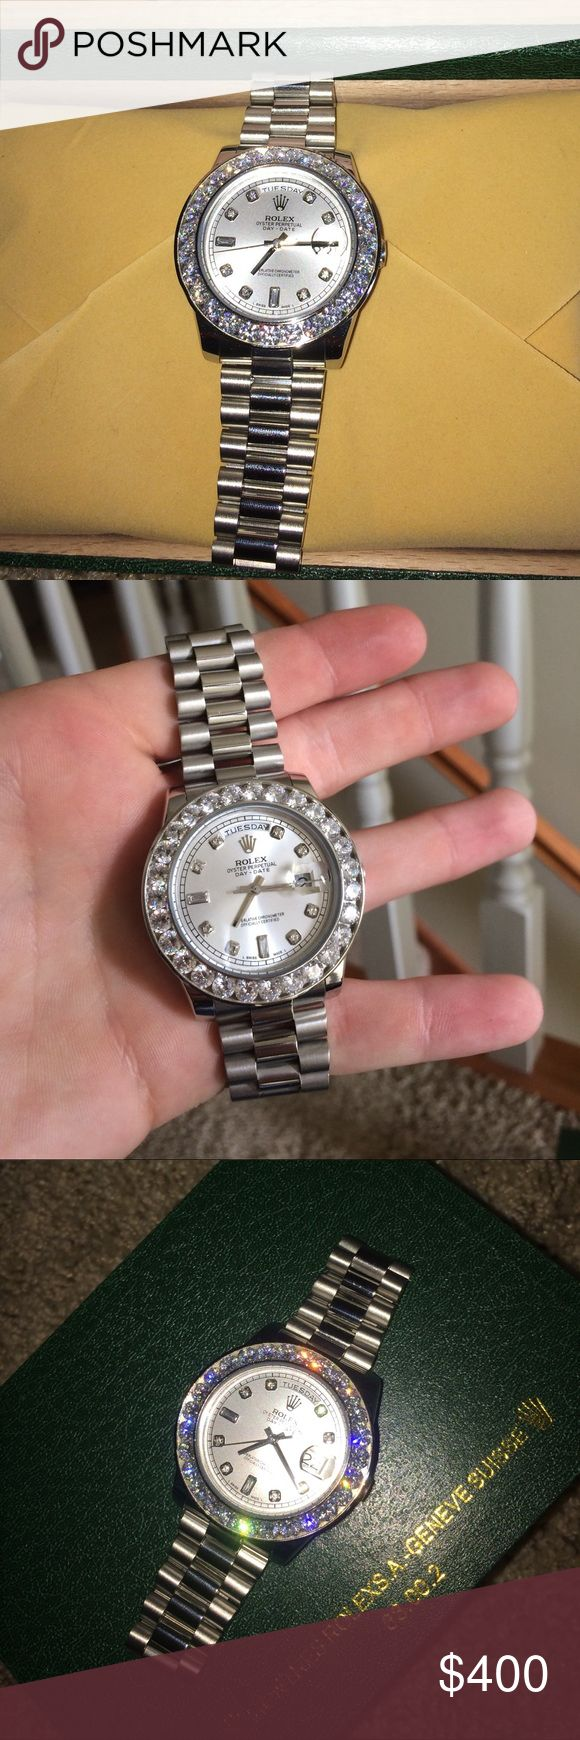 18k Plated Stainless Steel Rolex w Lab Diamonds 18k white gold plated stainless steel presidential day/date with lab simulated diamonds on the bezel. Glides and doesnt tick. Comes with box. Rolex Accessories Watches